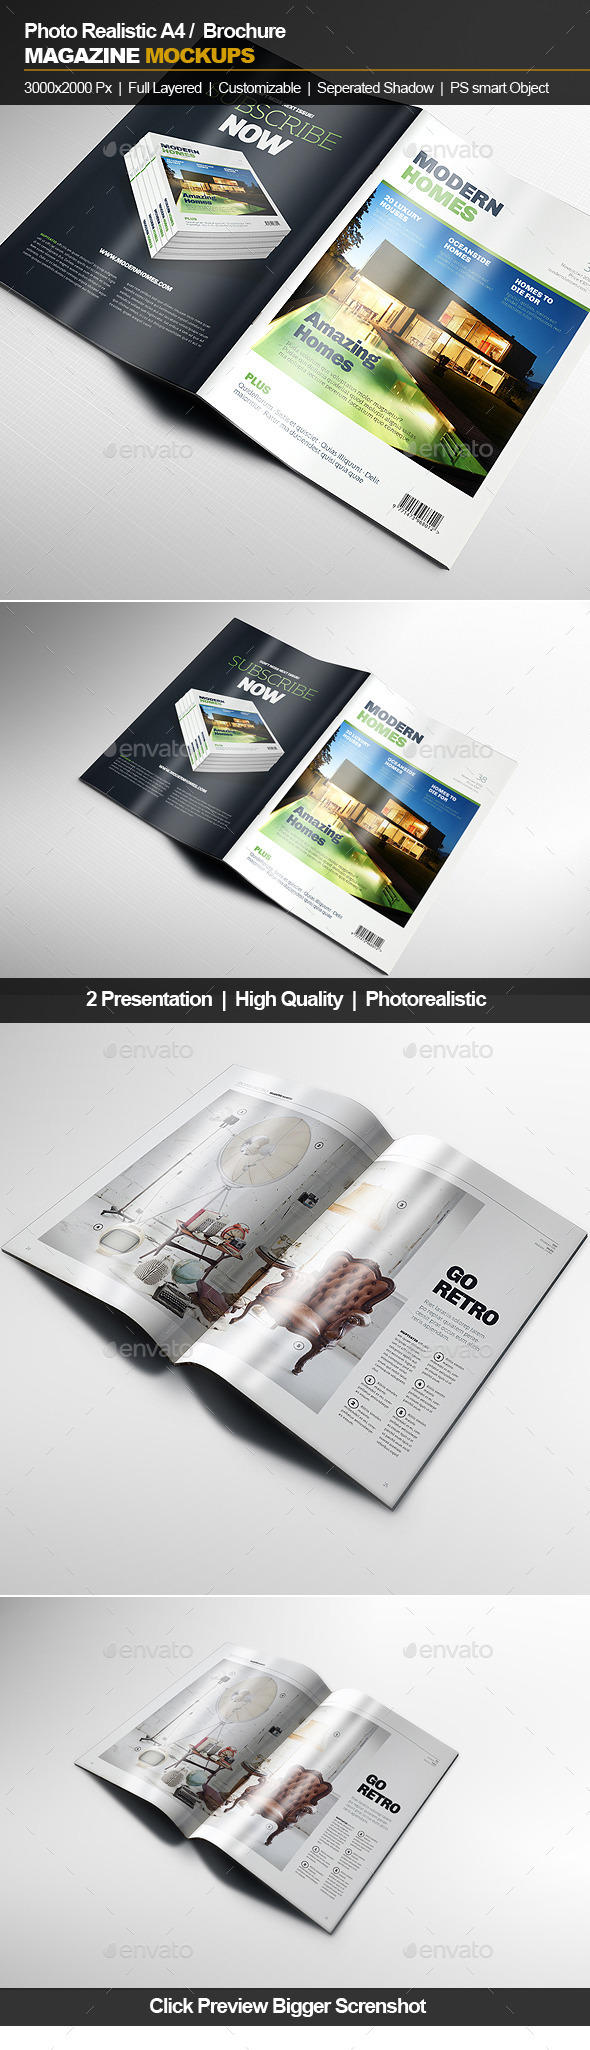 GraphicRiver A4 Brochure Magazine Mockup 11844422